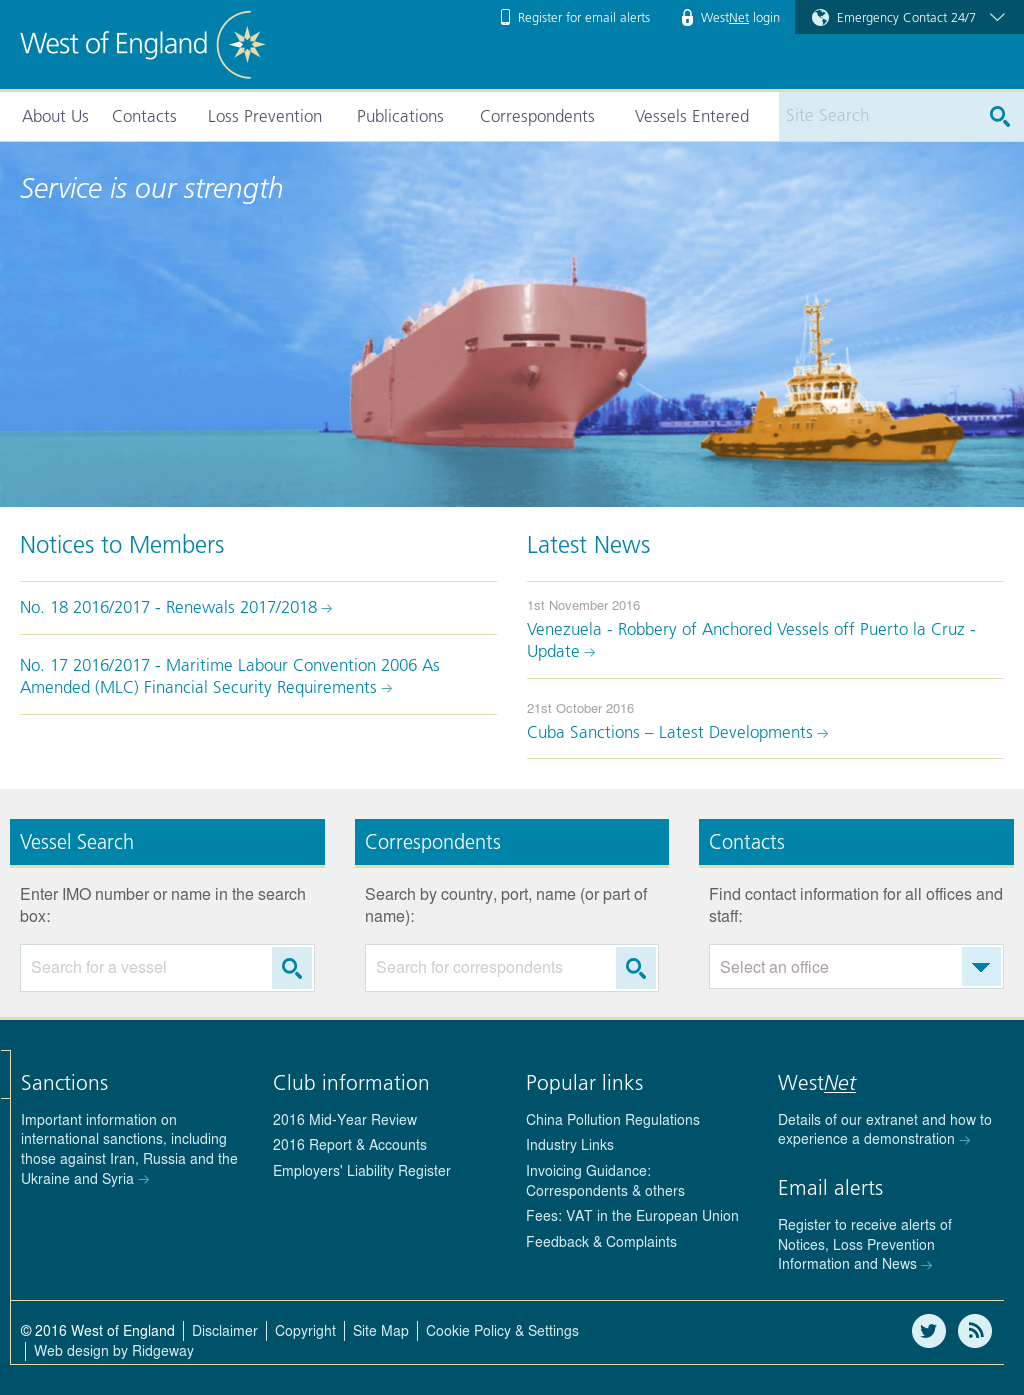 The West of England Ship Owners Insurance Competitors, Revenue and